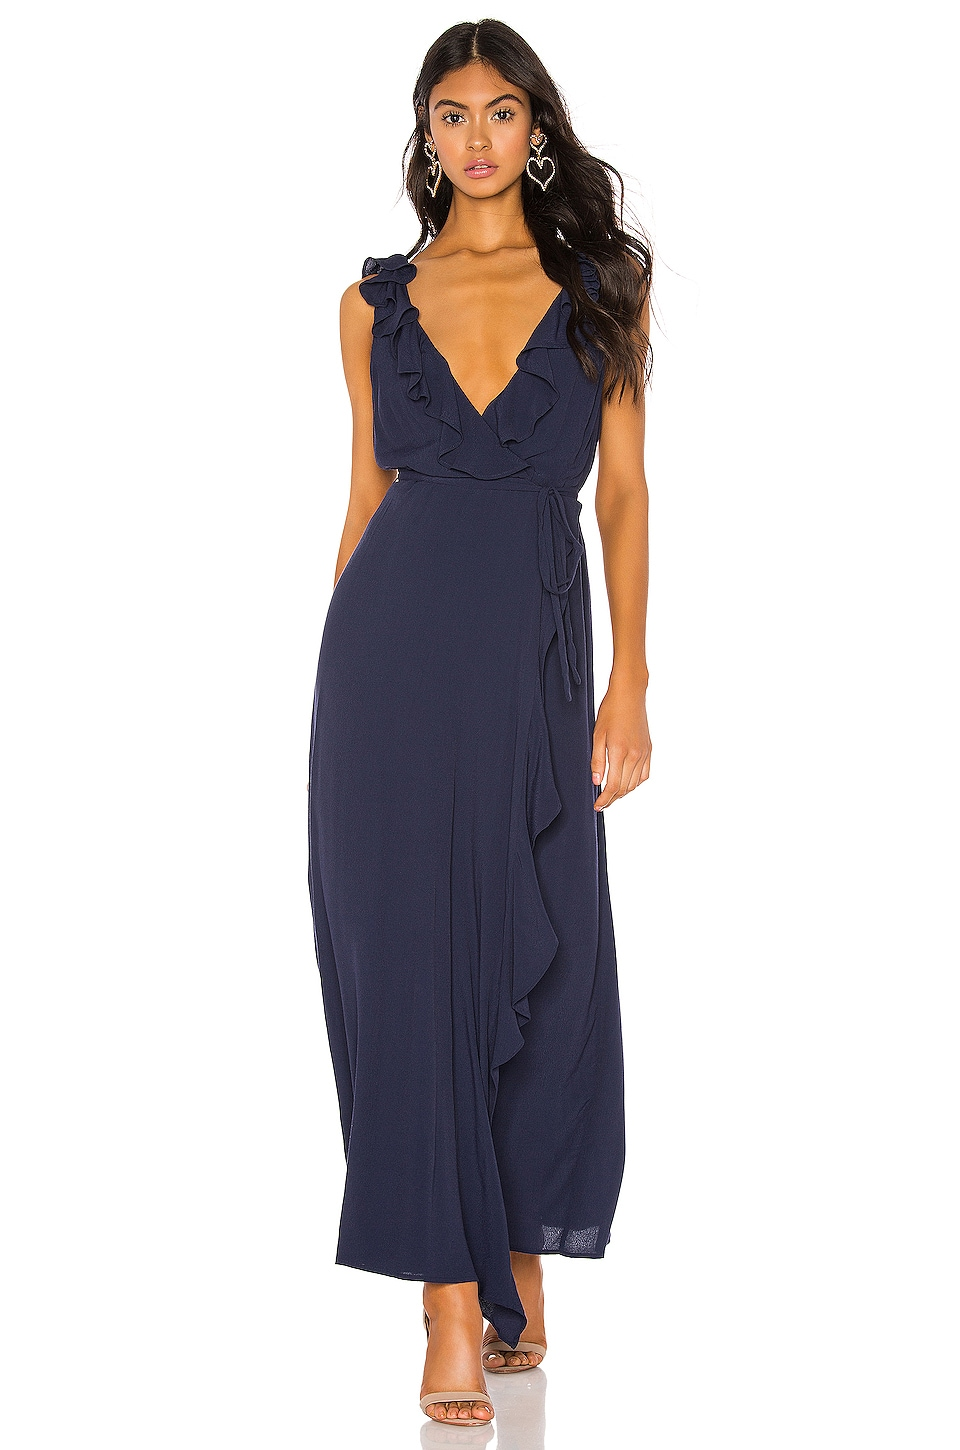 Bardot Alex Ruffle Dress in French Navy